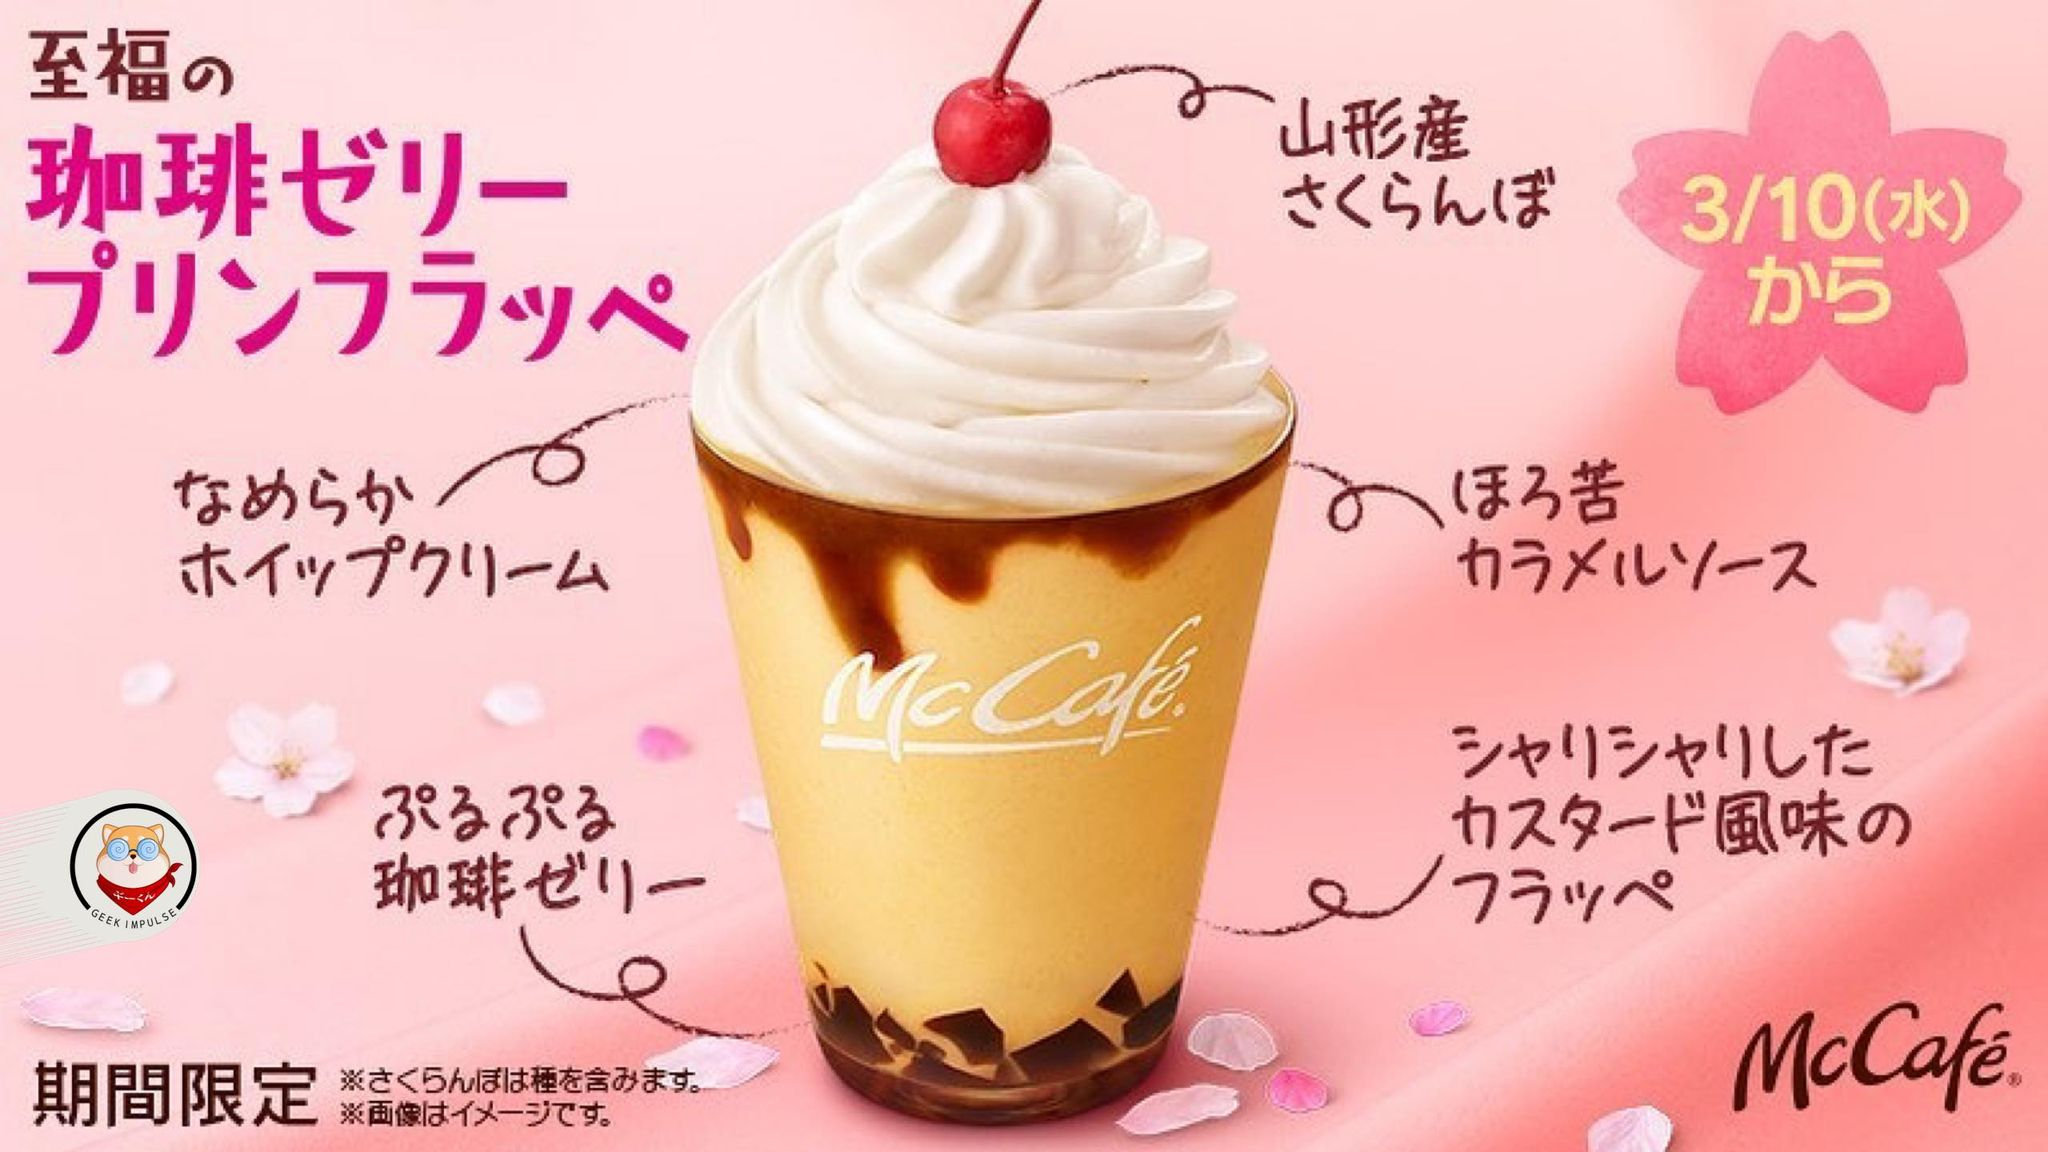 Coffee jelly pudding frappe